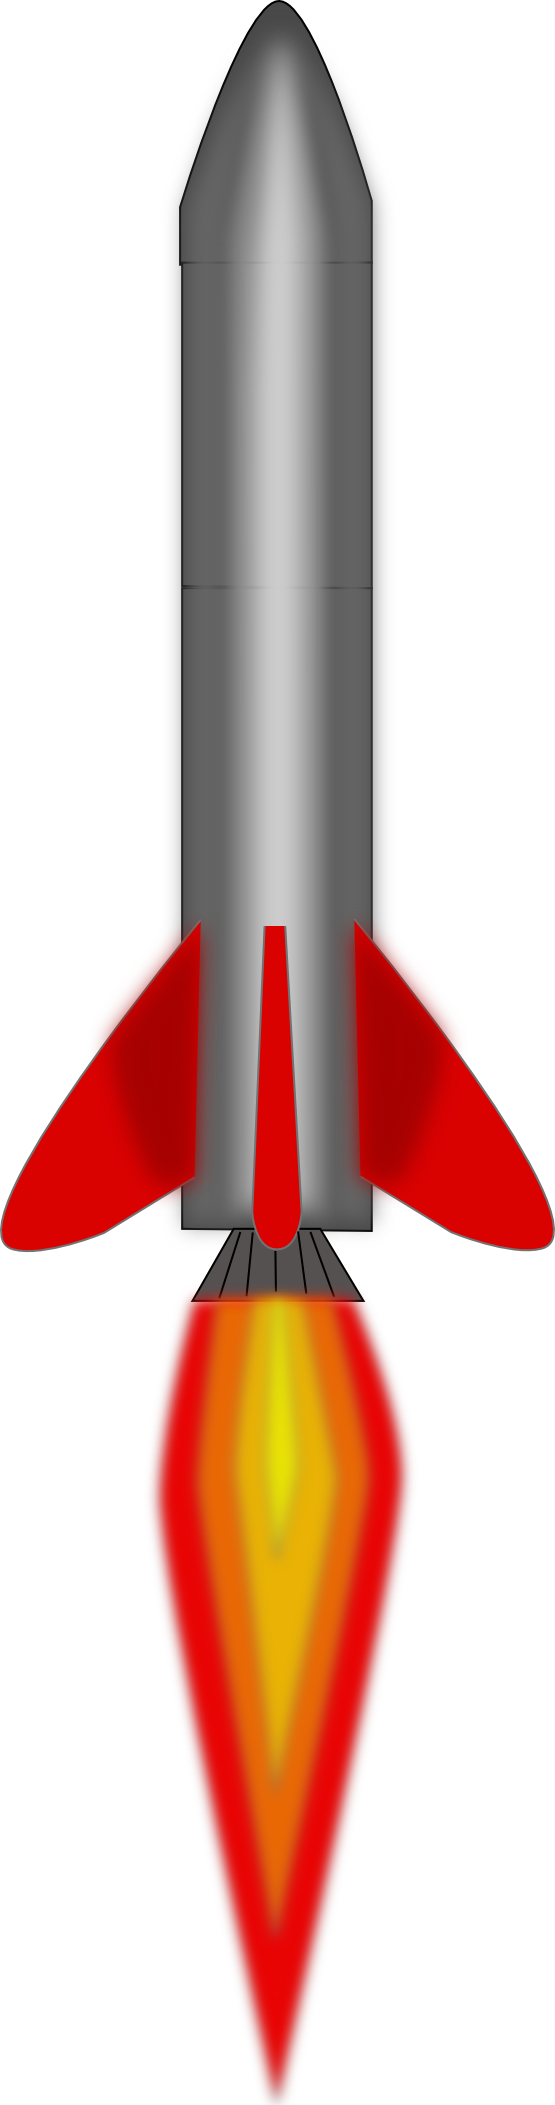 Spaceship clipart yellow. Missile png images free